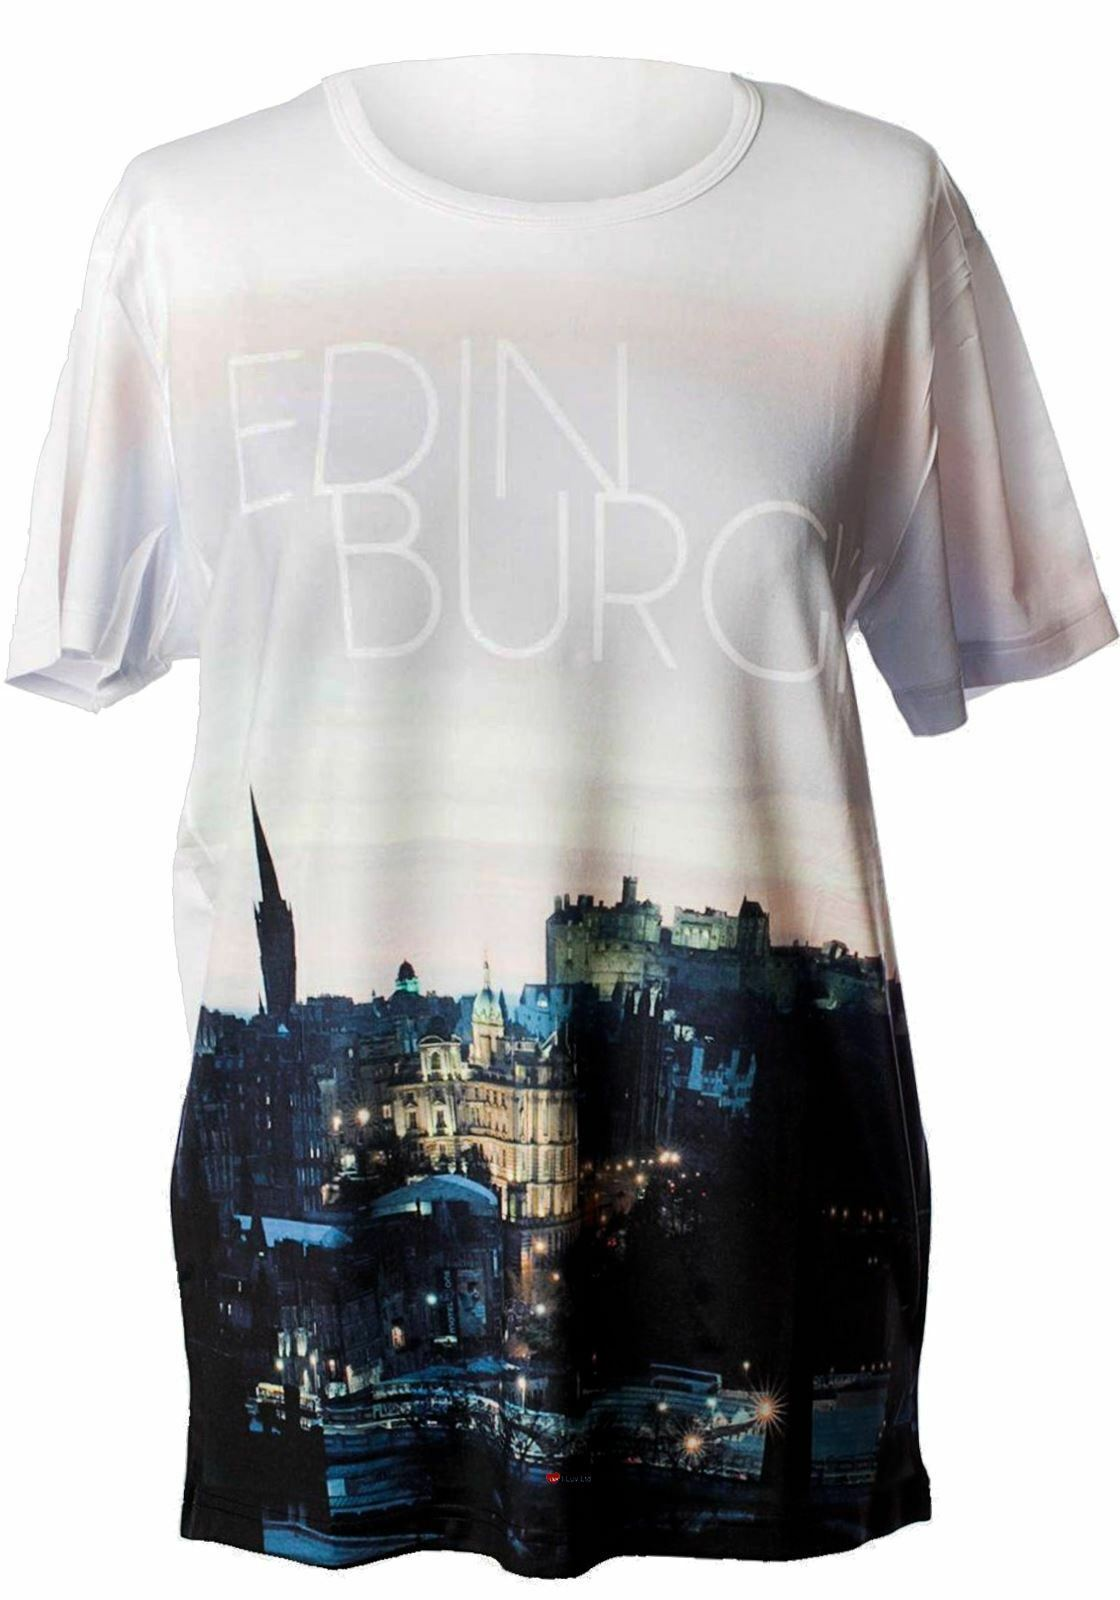 Mens Mens Mens T-Shirt Top Scotland Edinburgh Castle City Night Picture - Weiß Medium | Qualität Produkte